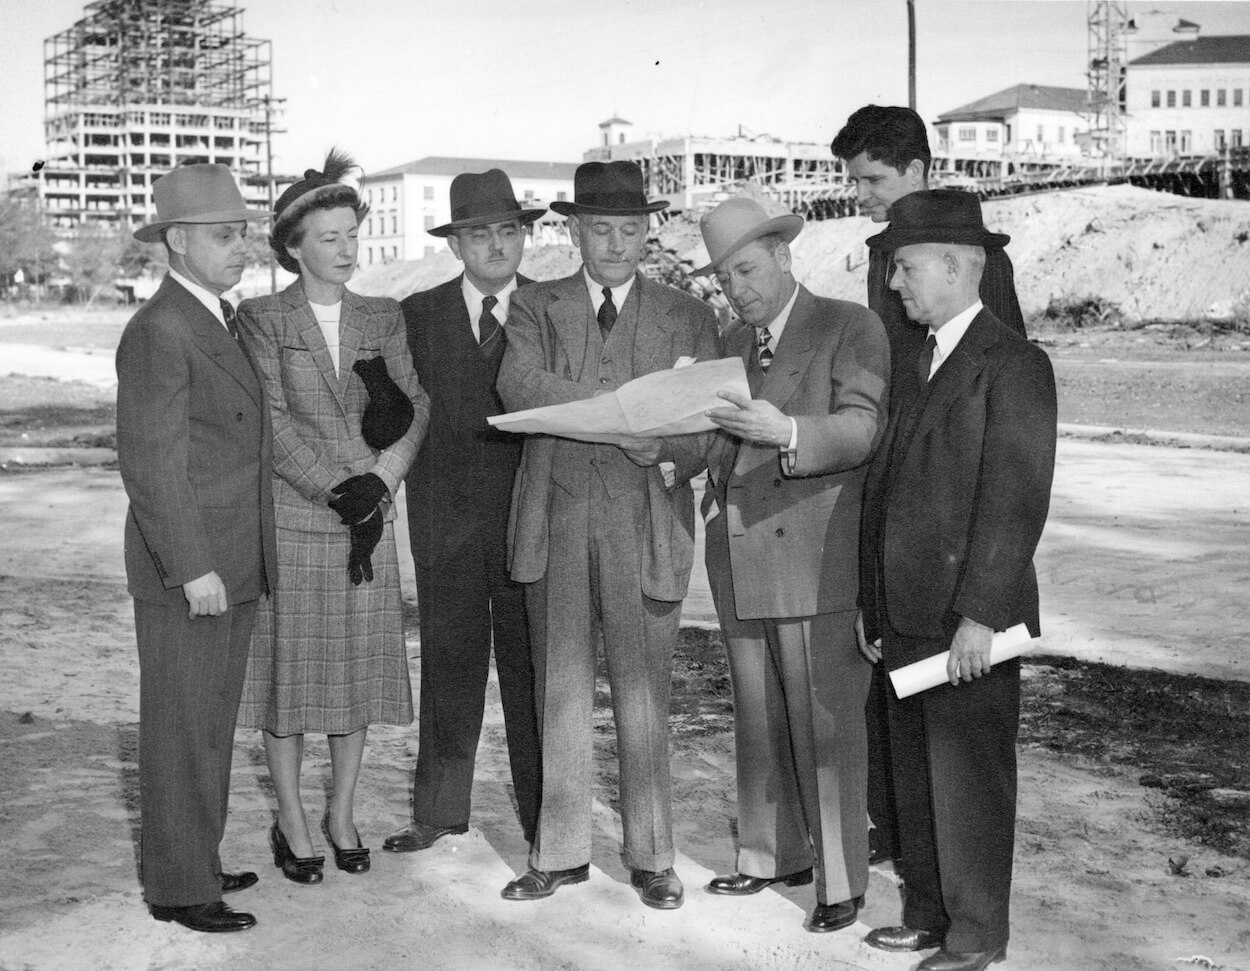 Ernst Bertner, the first president of the Texas Medical Center, center, in 1947 holding plans for the new medical district. (Image courtesy of the McGovern Historical Center, Texas Medical Center Library)